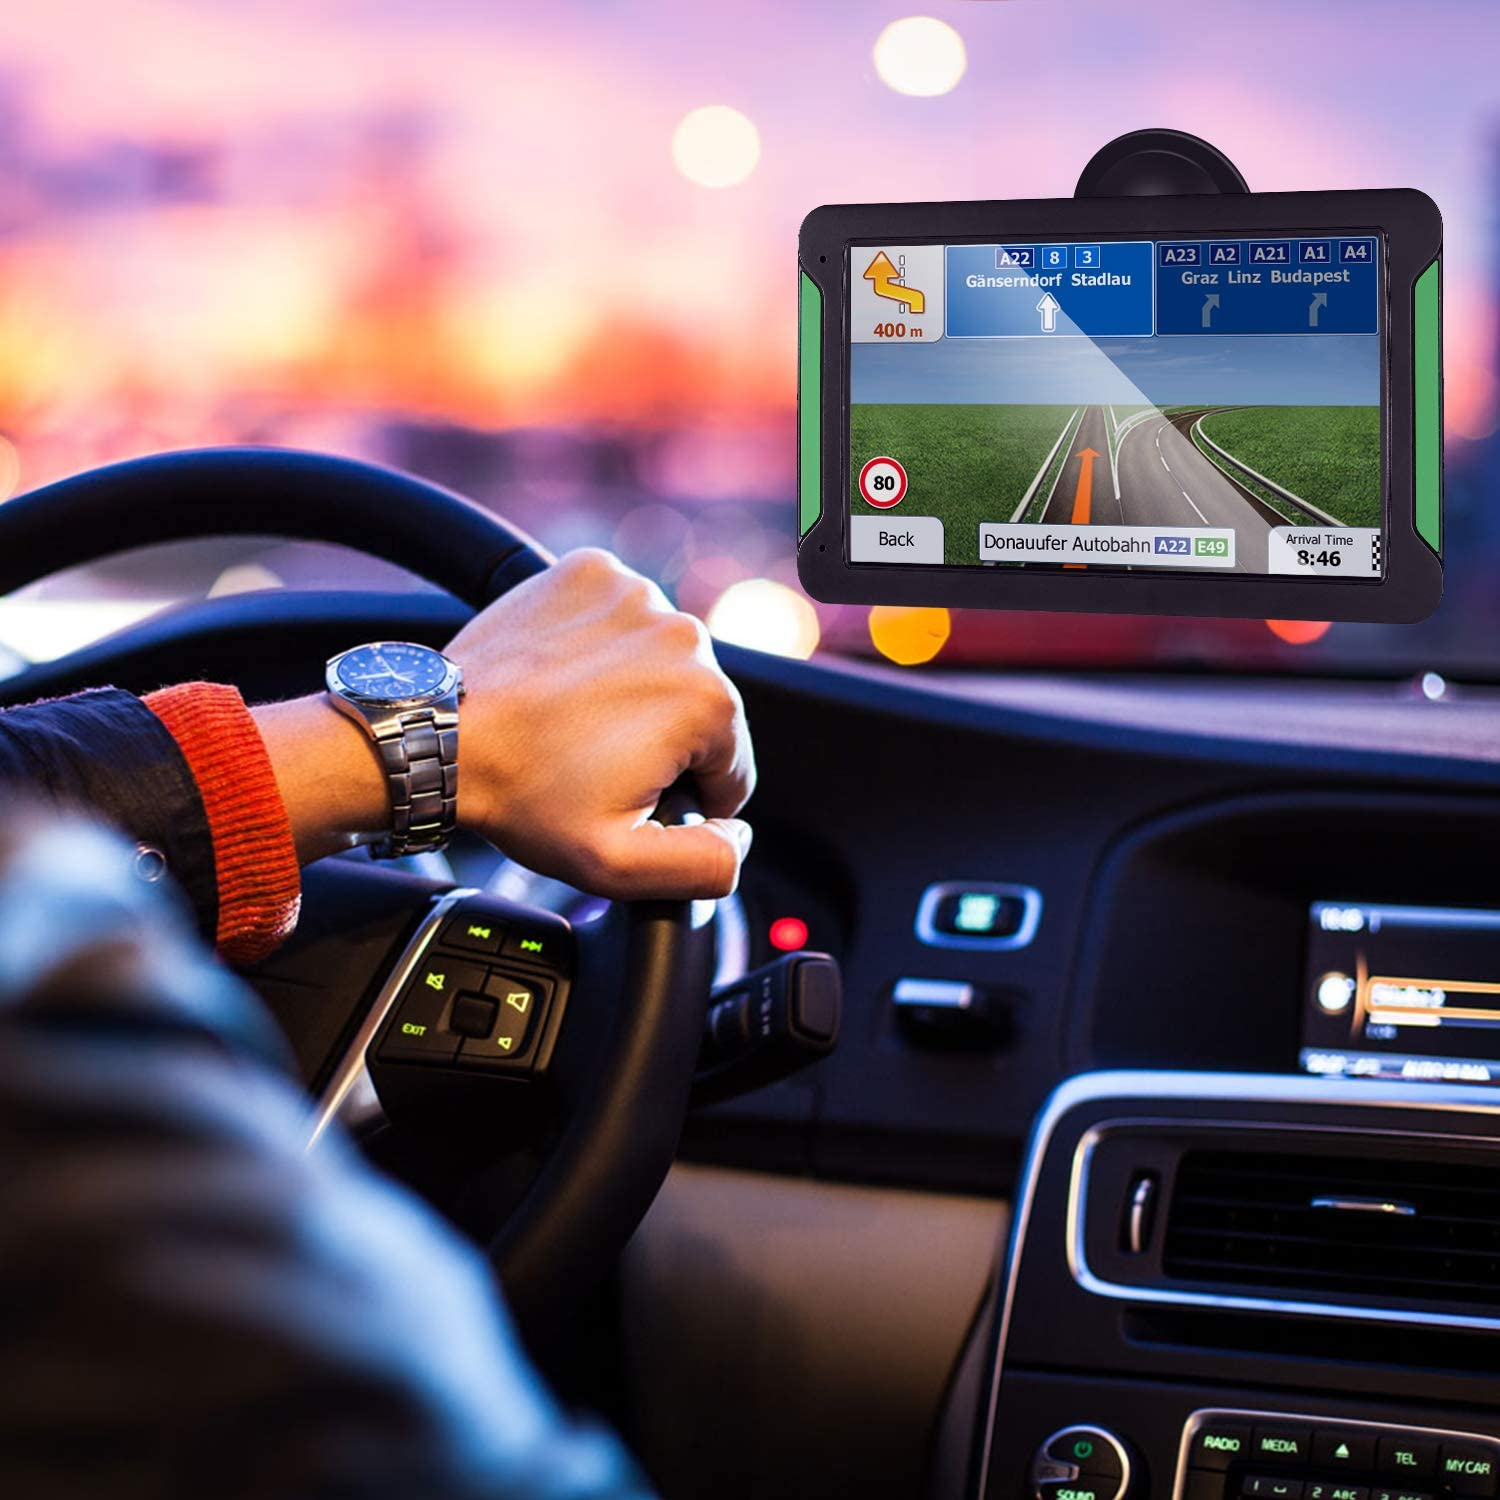 Free Lifetime Map Update Real-time Voice Reminder 8GB 256 Satellite Navigation Speeding Warning 7 inches Route Planning Car GPS Navigation Aonerex 7-inch HD Touch Screen